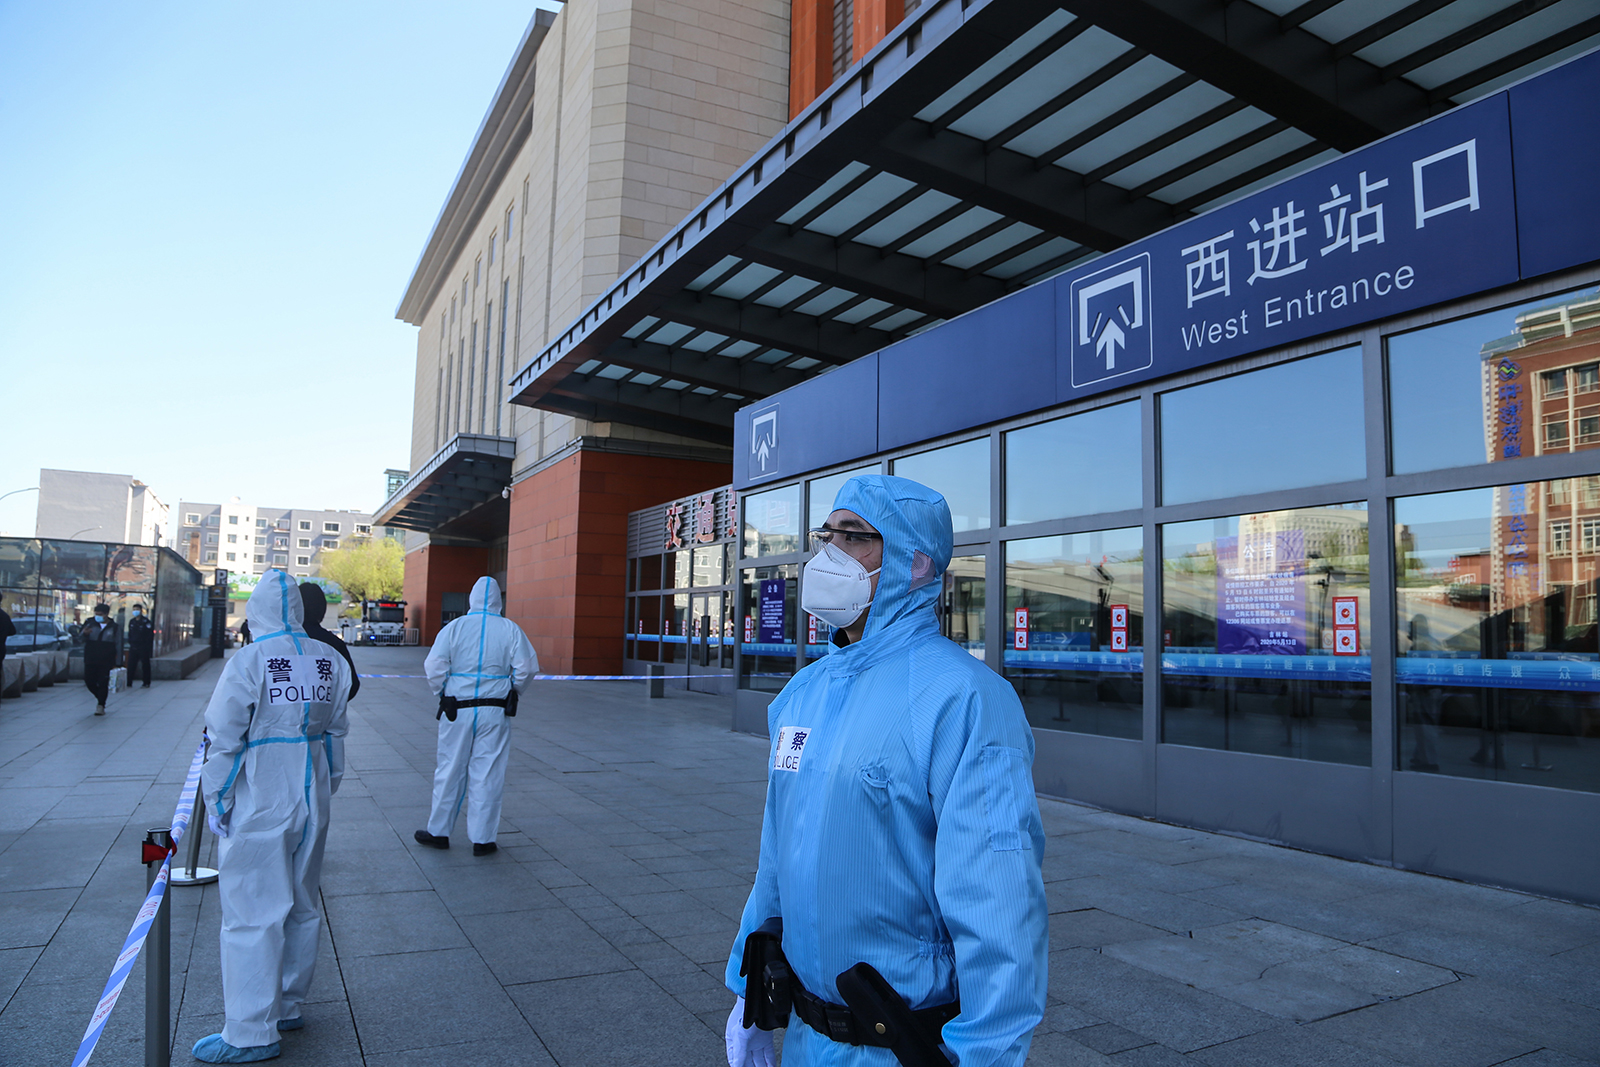 Police officers clad in protective suits stand guard outside Jilin city's railway station in Jilin province on May 13.